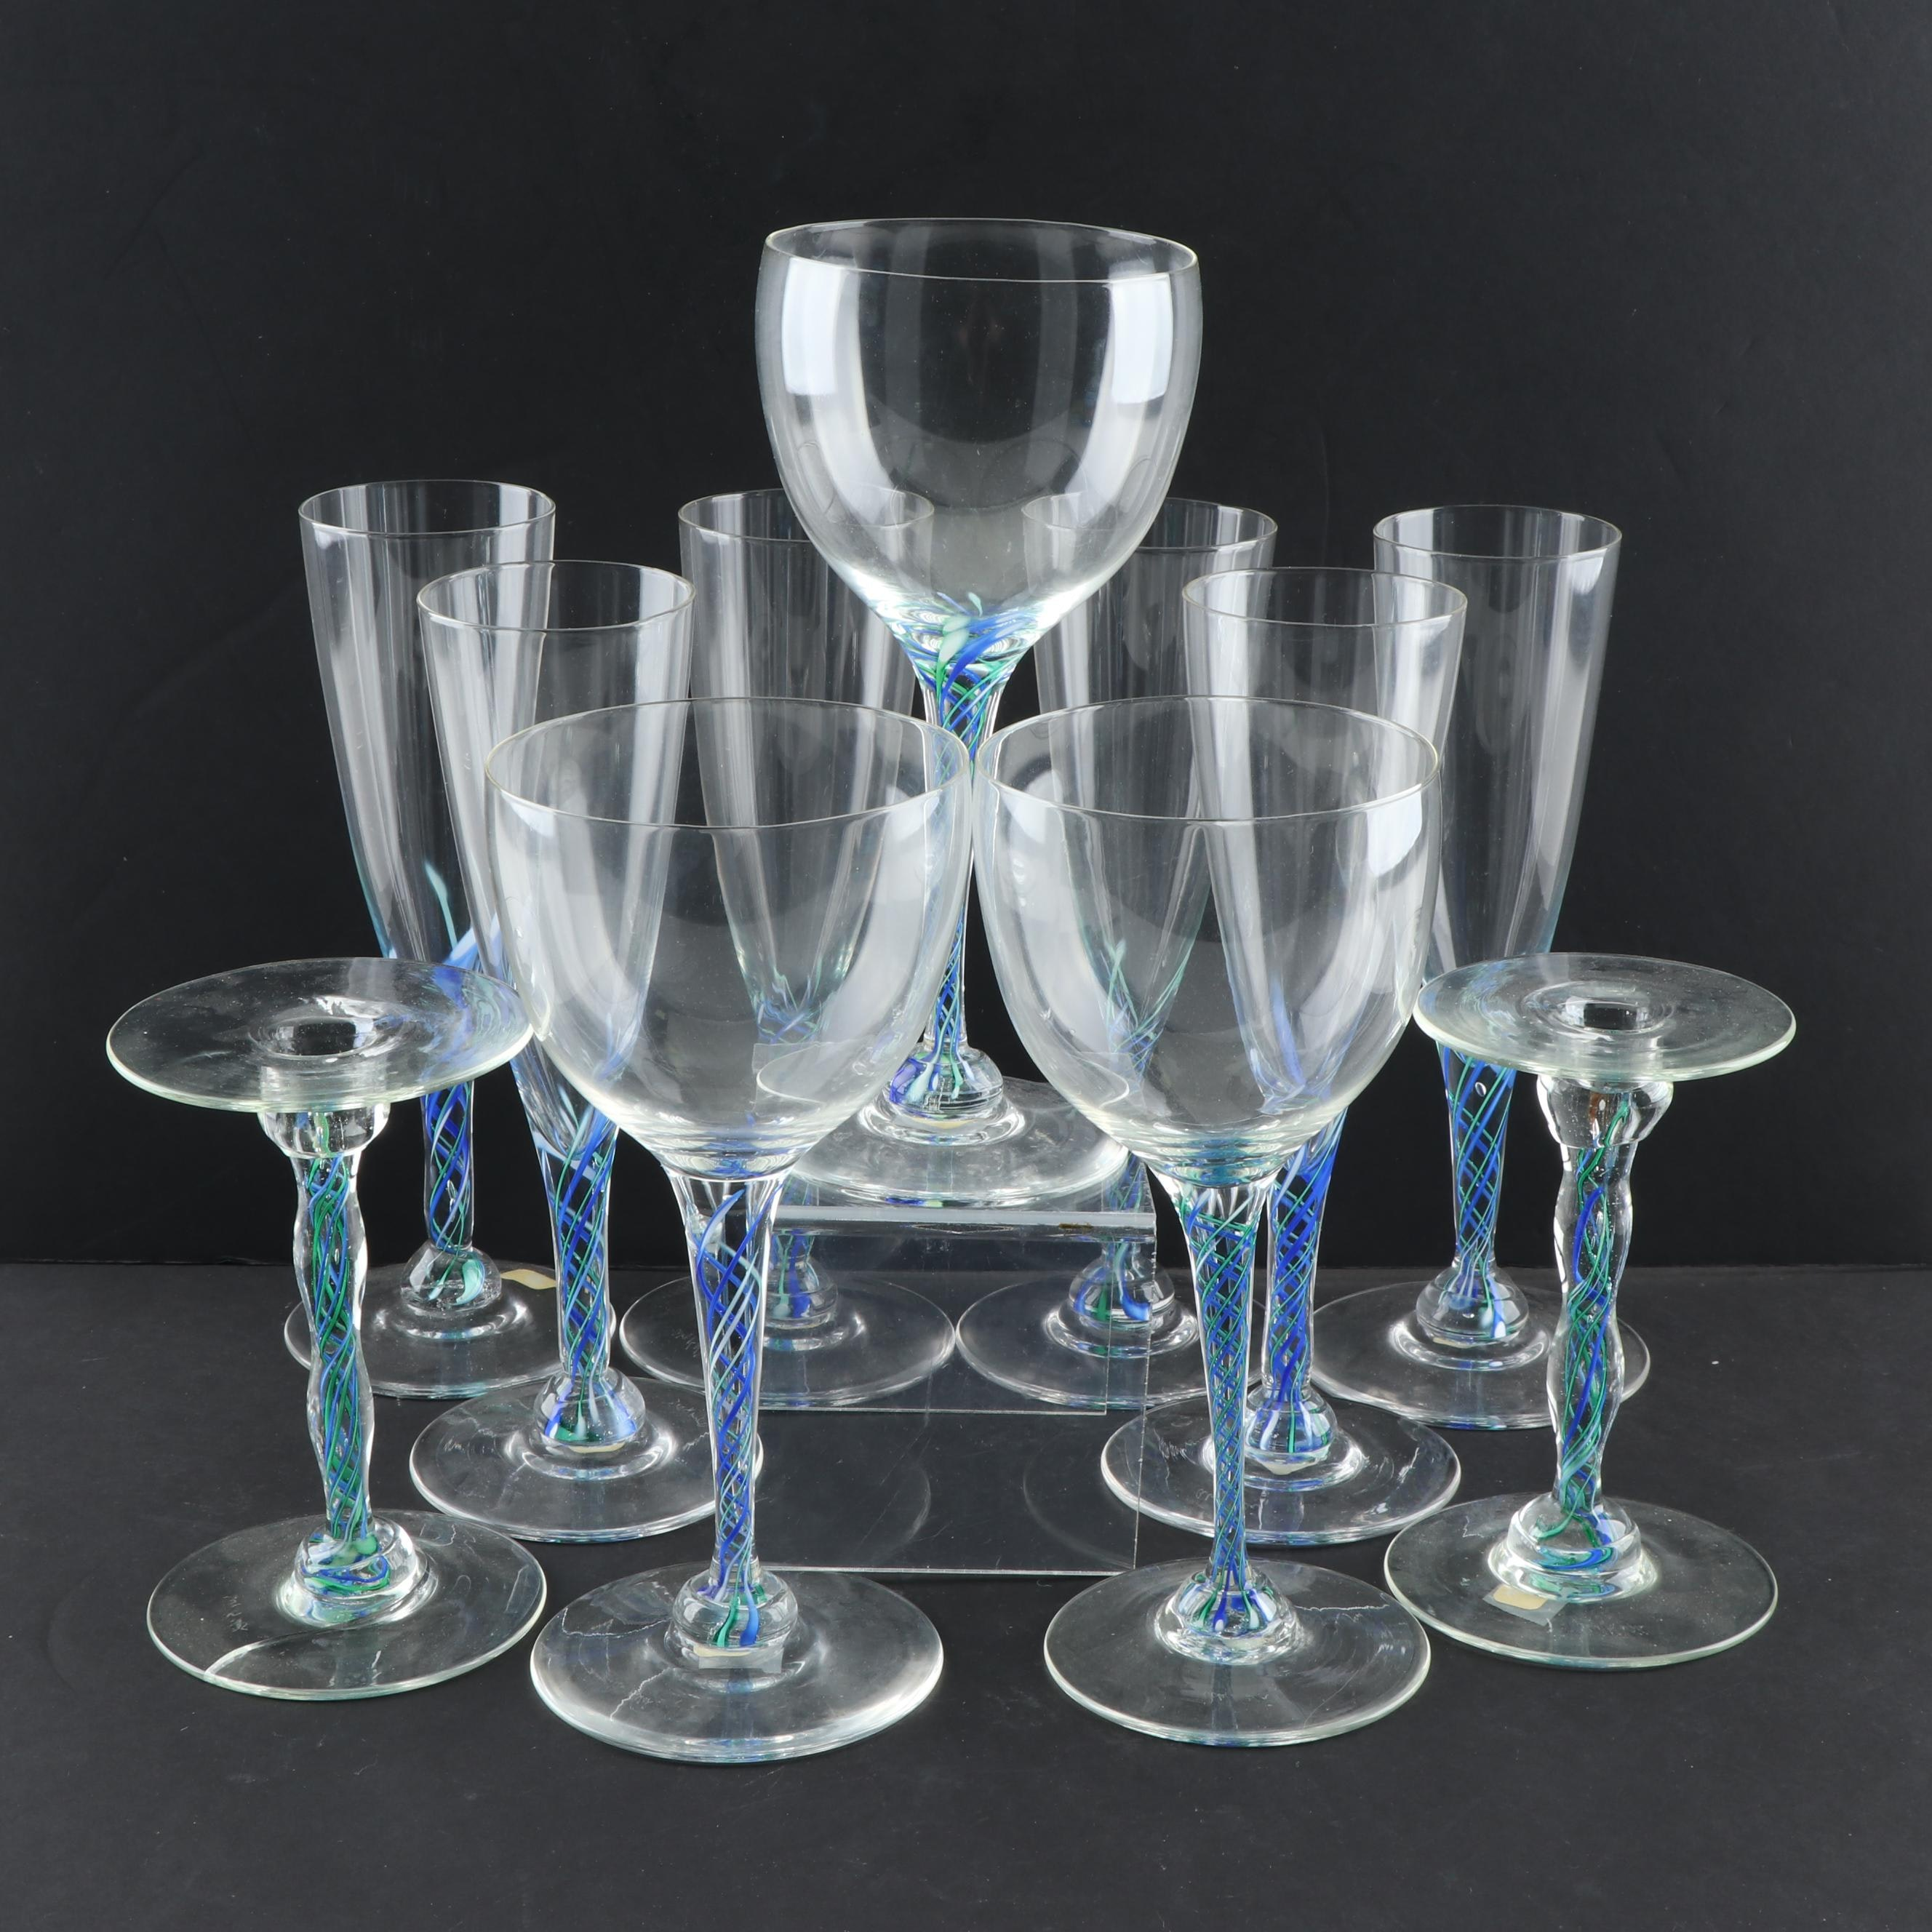 Blown Glass Stemware and Candlesticks with Swirled Ribbon Glass Stems